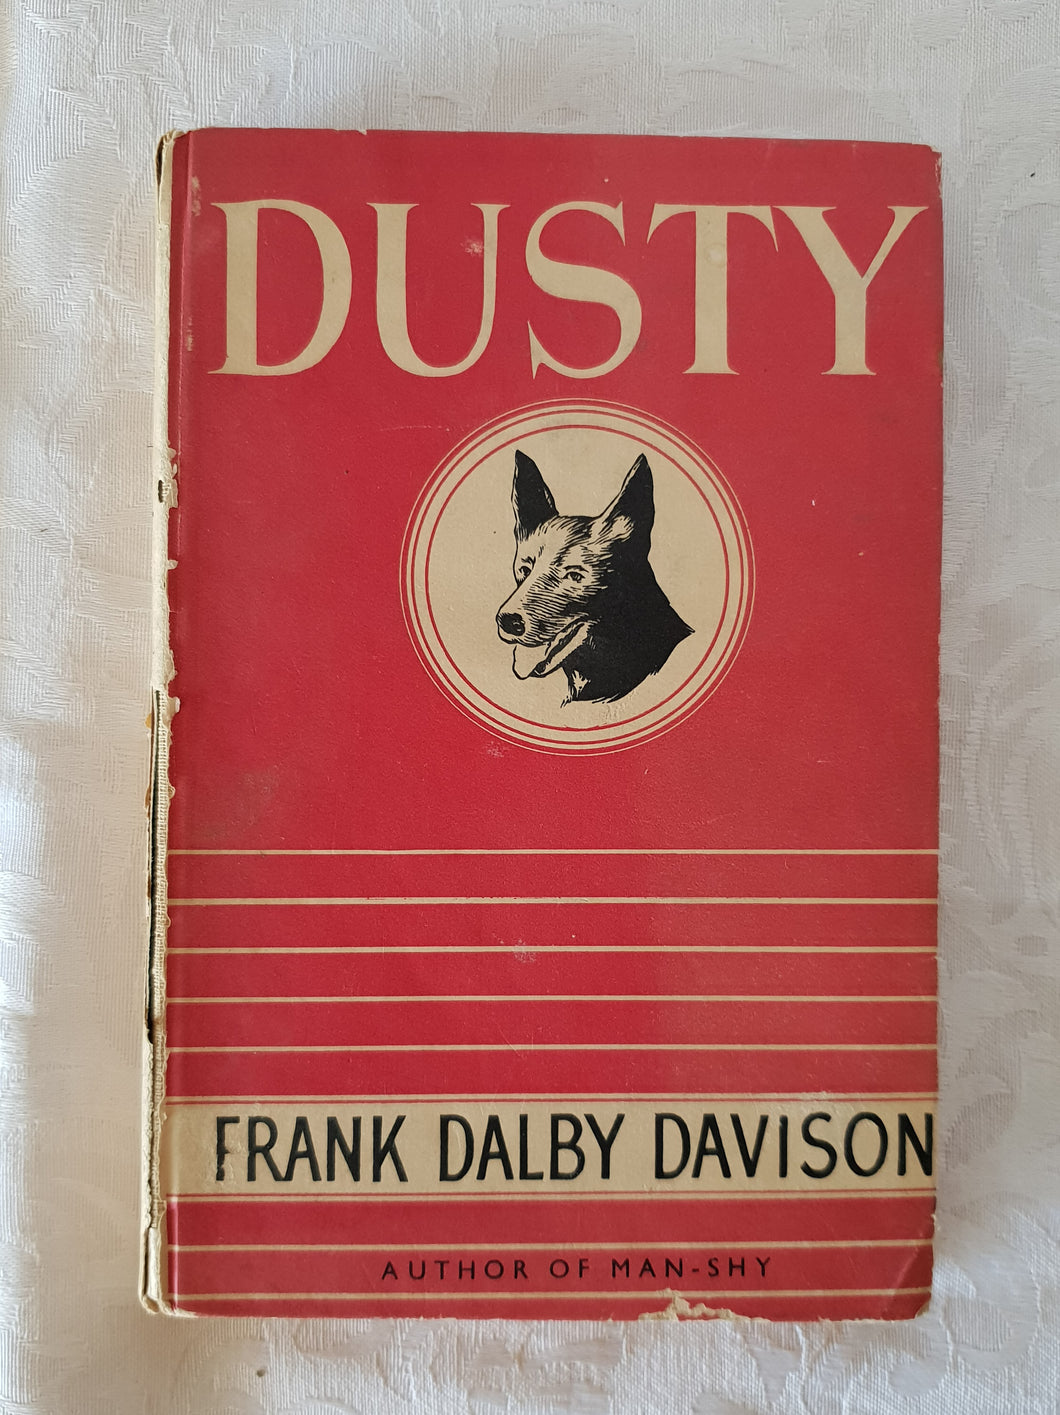 Dusty by Frank Dalby Davison